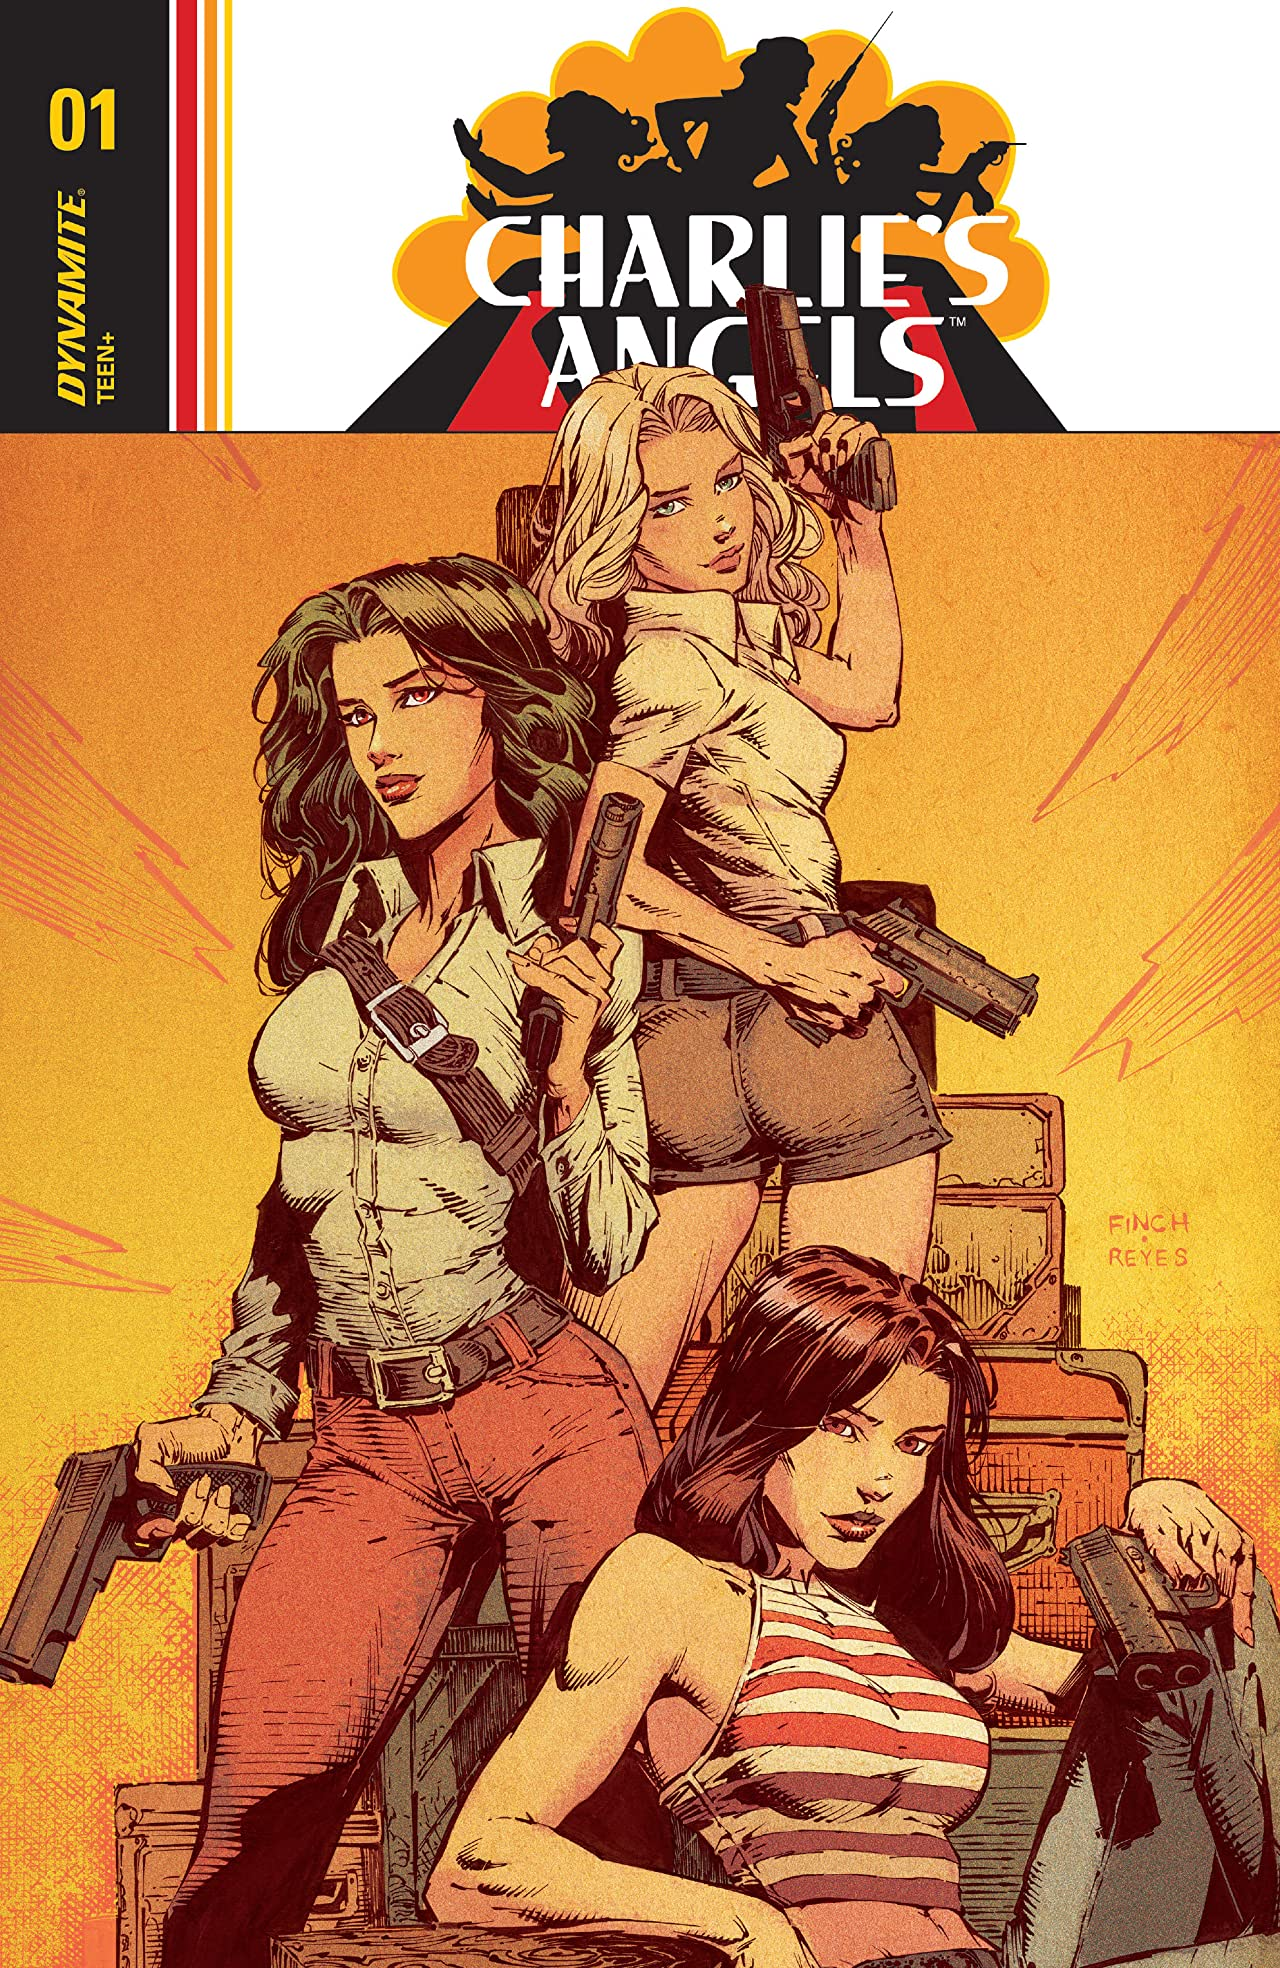 Charlie's Angels #1